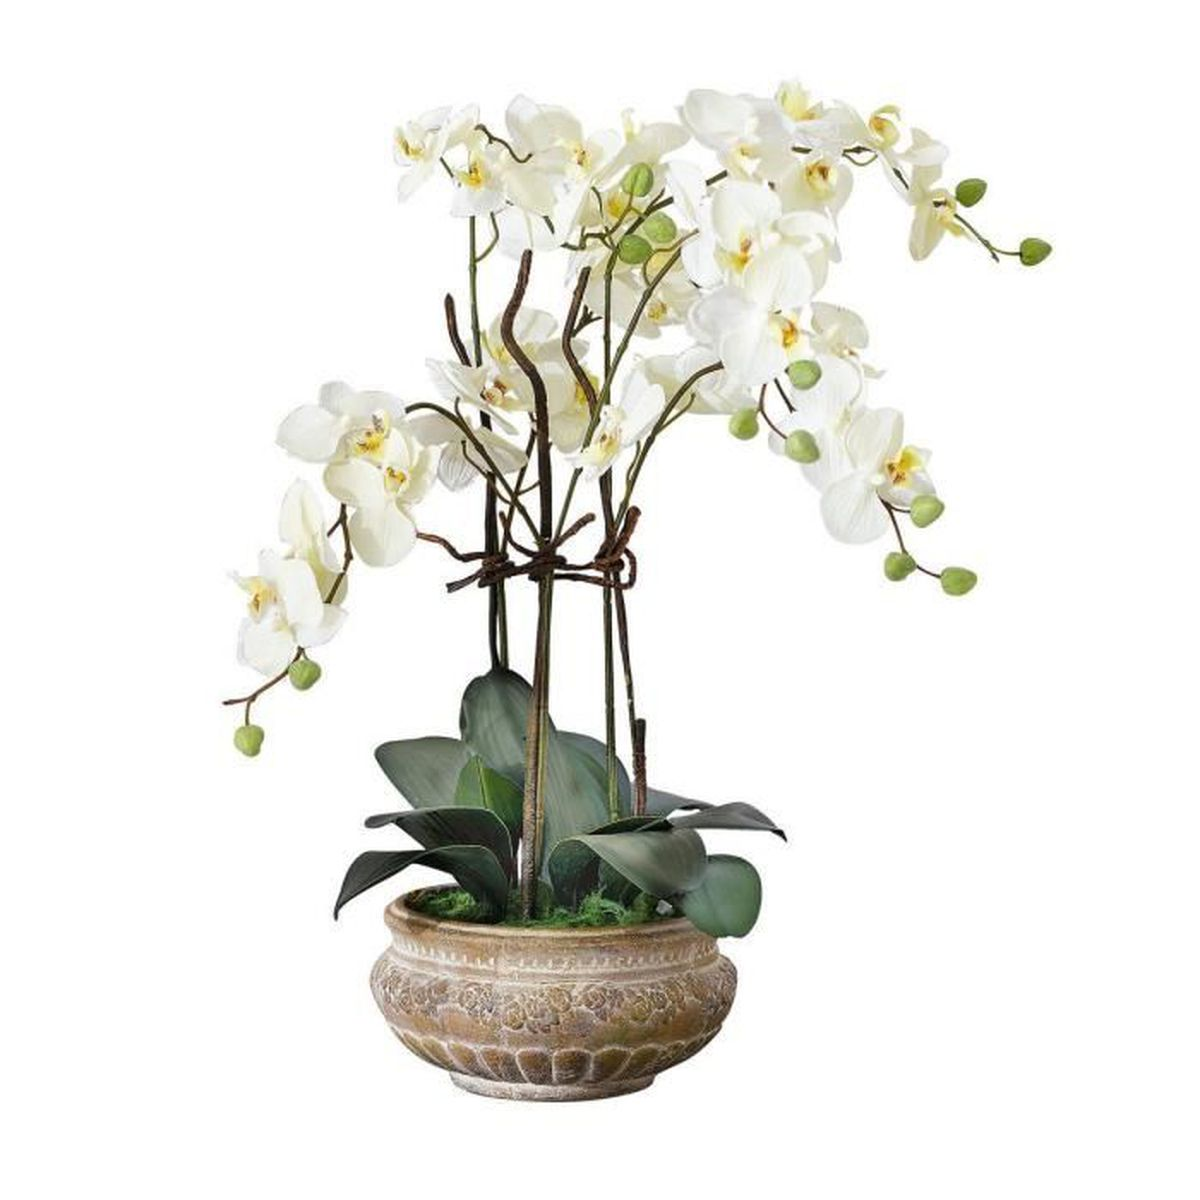 Pureday plante artificielle orchid e avec pot en c ramique brun - Plantes artificielles discount ...